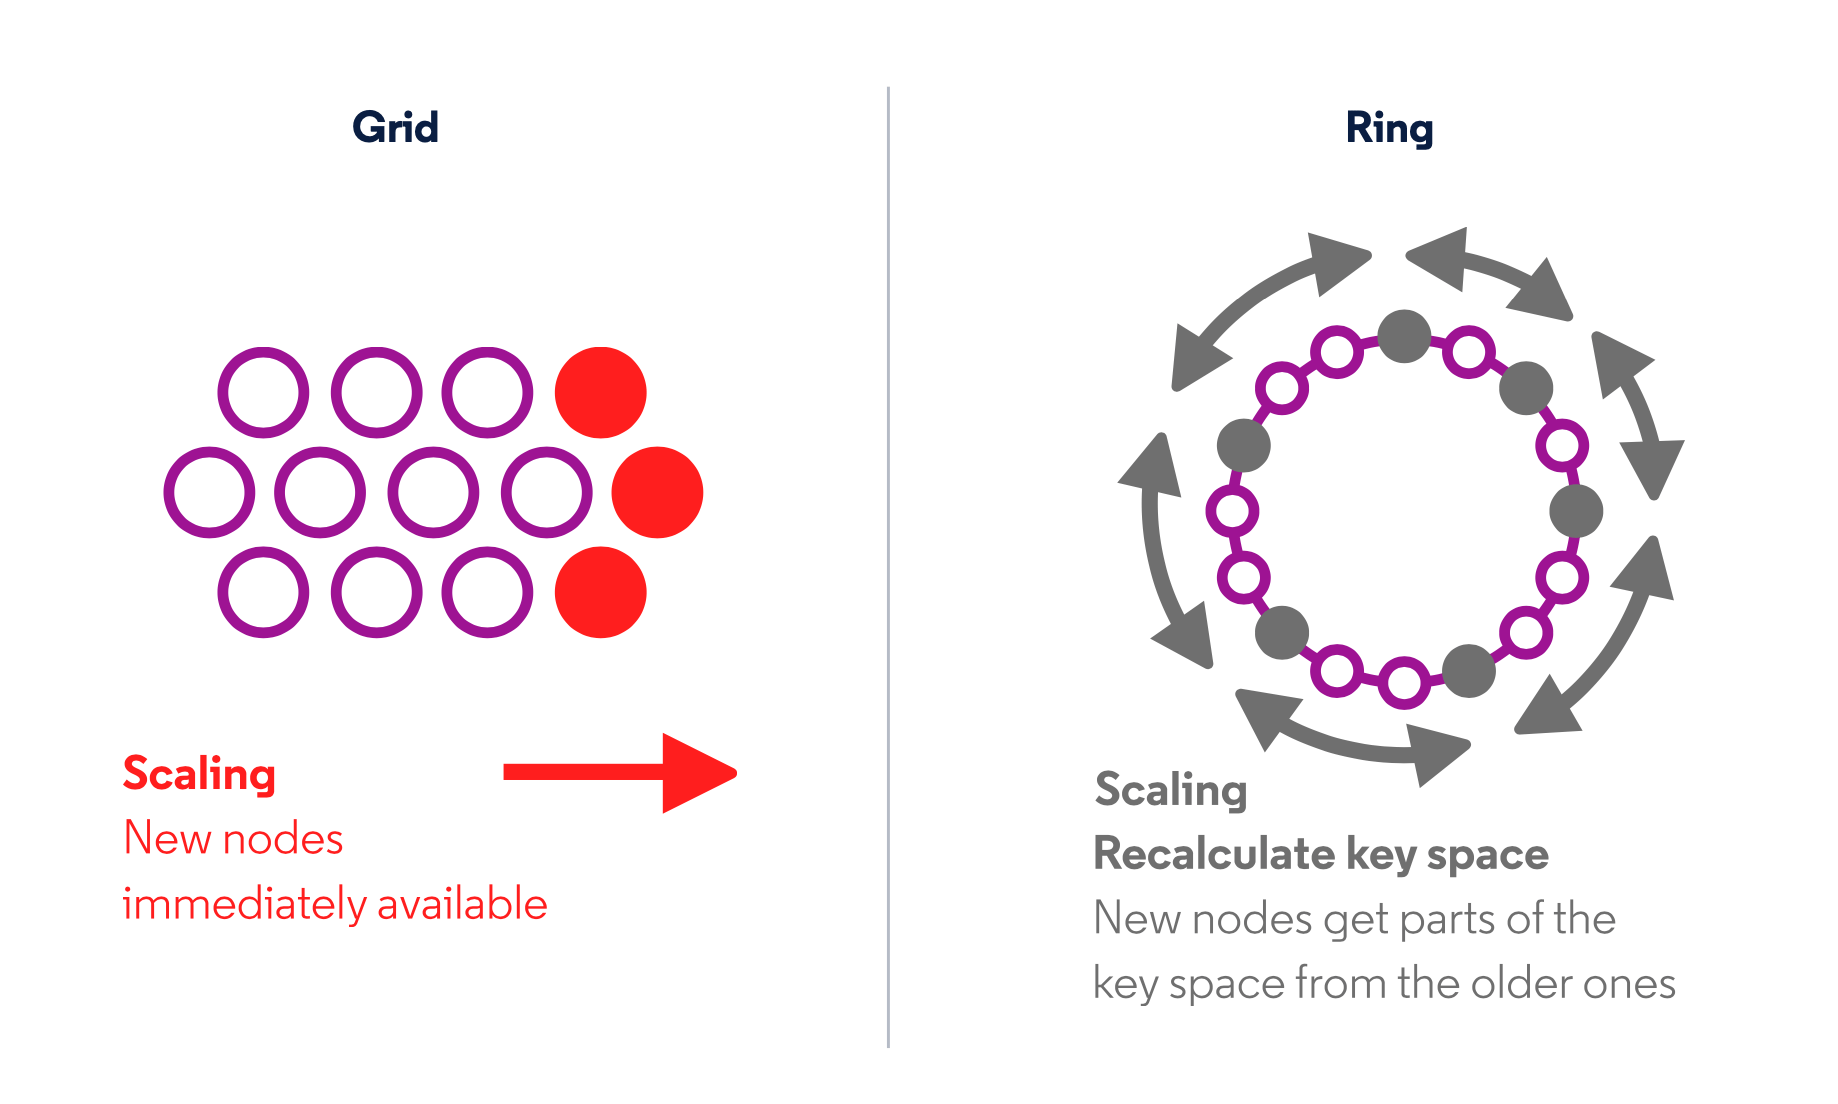 Grid vs Ring Storage Architecture